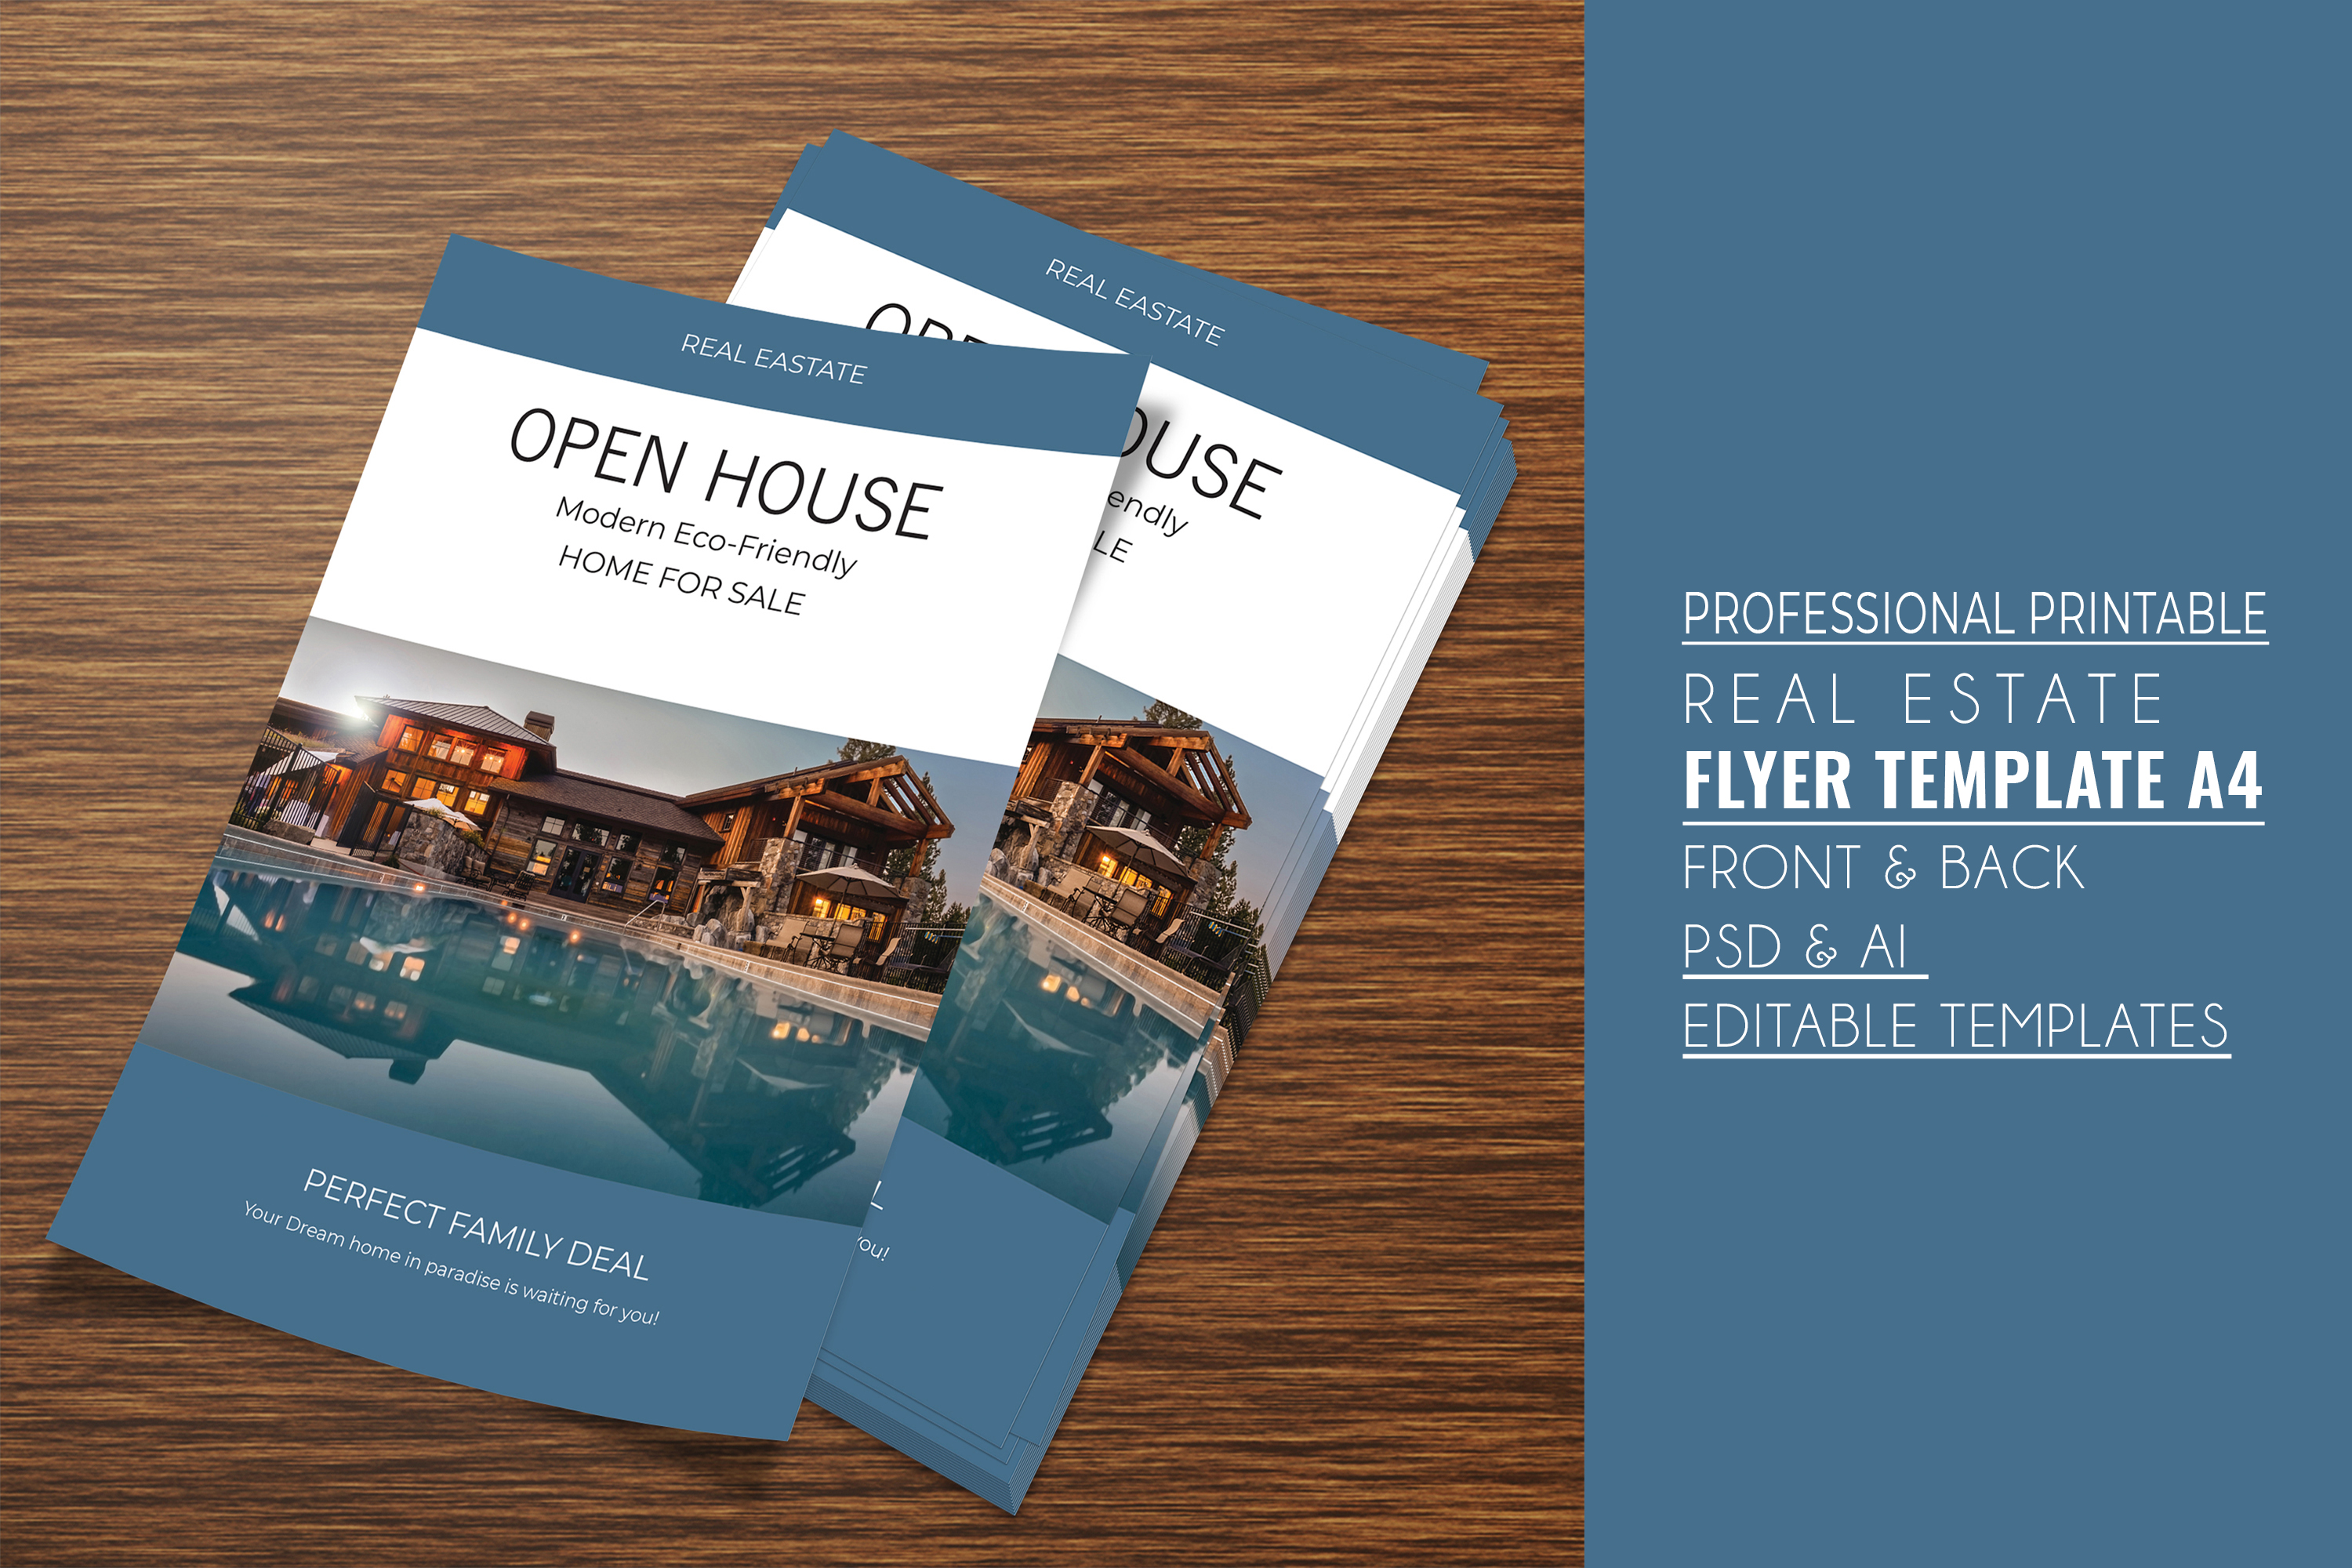 Professional Real Estate Flyer A4 - Printable Templates example image 8